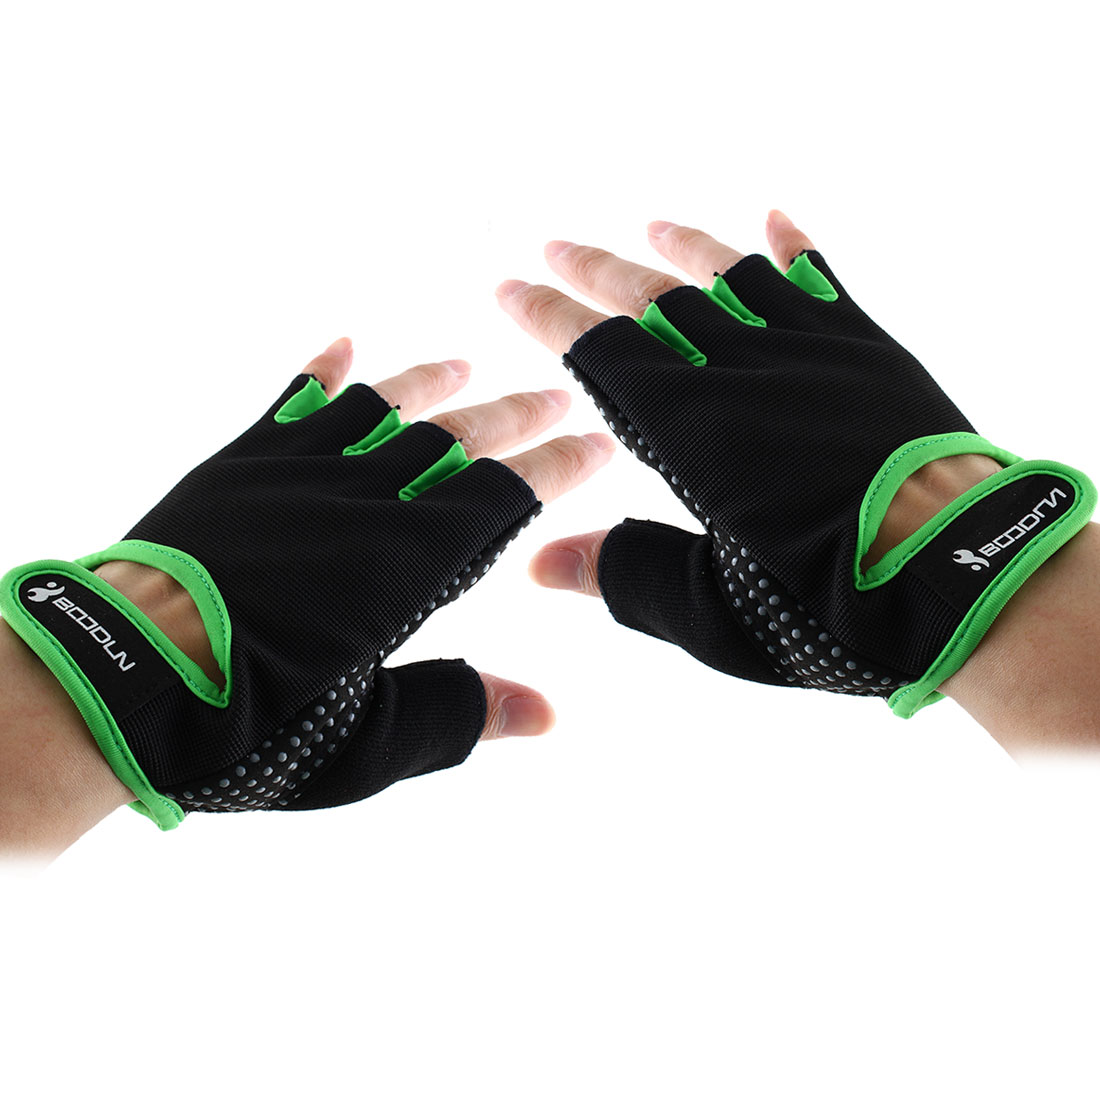 BOODUN Authorized Adult Unisex Spandex Adjustable Sports Training Workout Mittens Fitness Gloves Green XL Pair